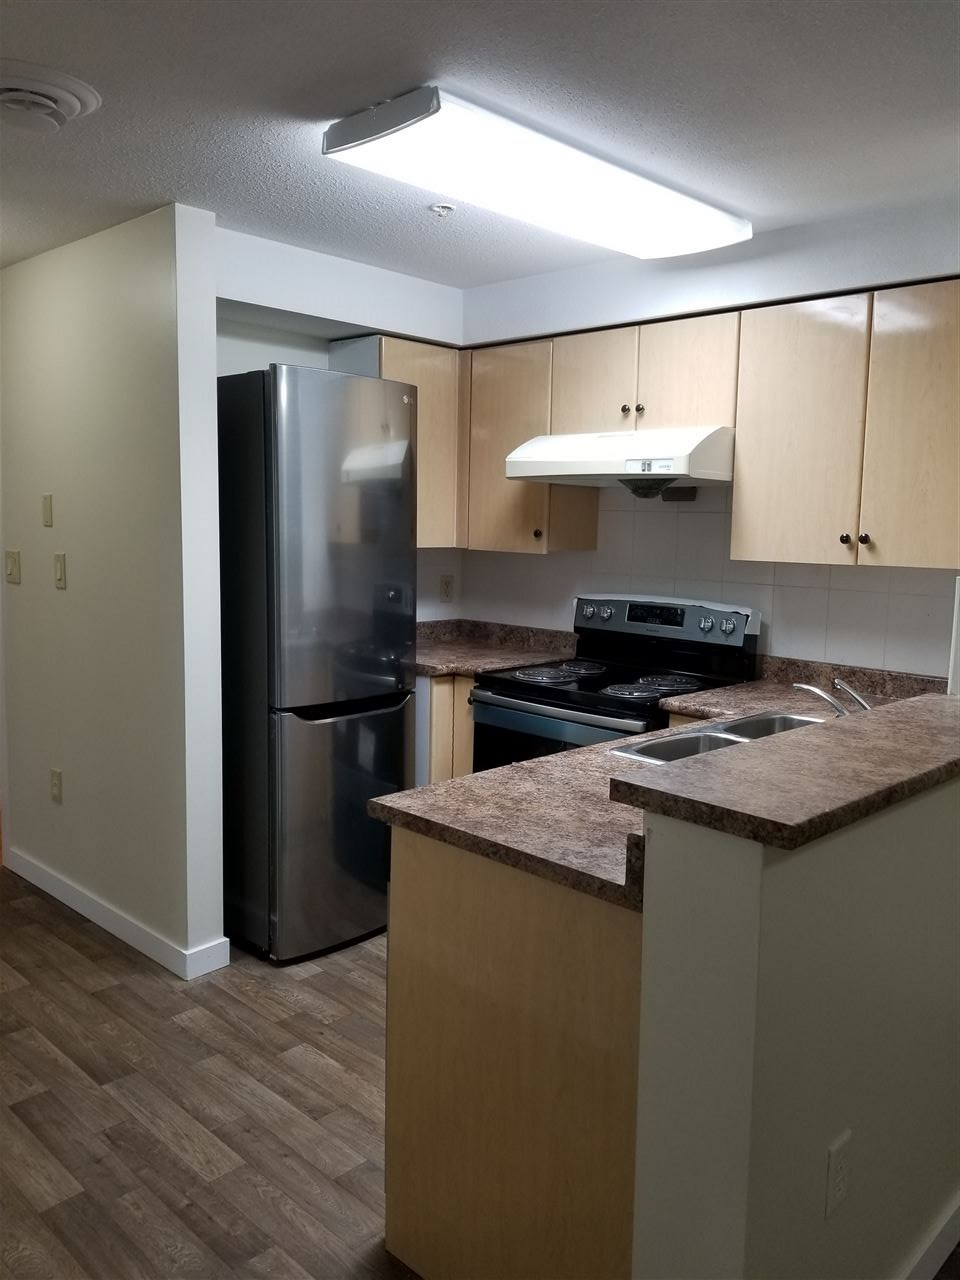 Totally renovated unit with all new appliances, kitchen cabinets, all new floors. Open layout. Concrete building with low strata fees. Great location. shopping, doctors, bank, school, transportation. On route to Scott Road Skytrain. Great investment. All measurements and square footage must be verified.